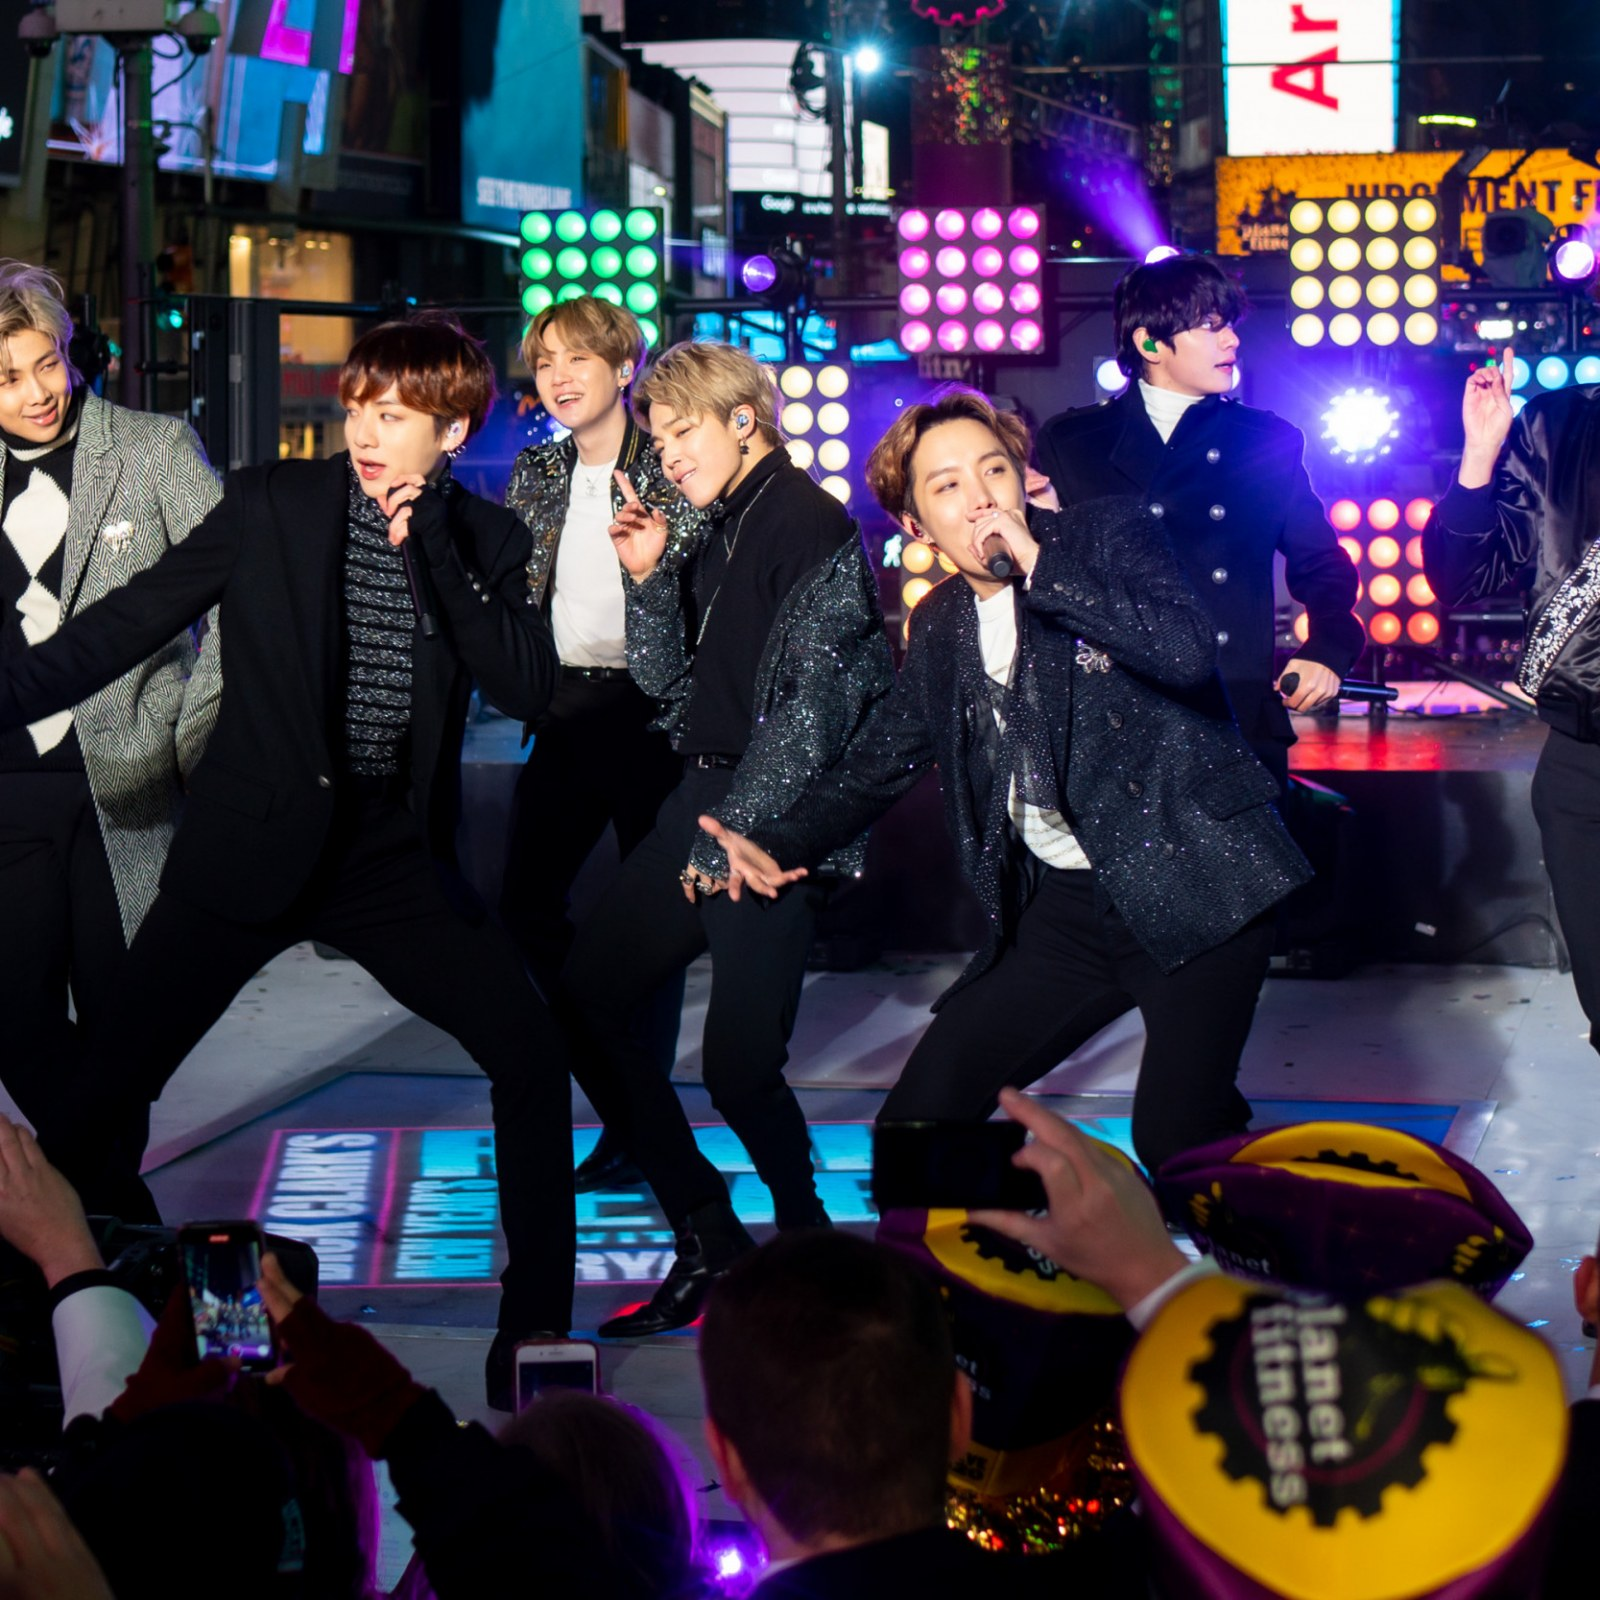 bts to perform at the 2020 grammy awards bts to perform at the 2020 grammy awards